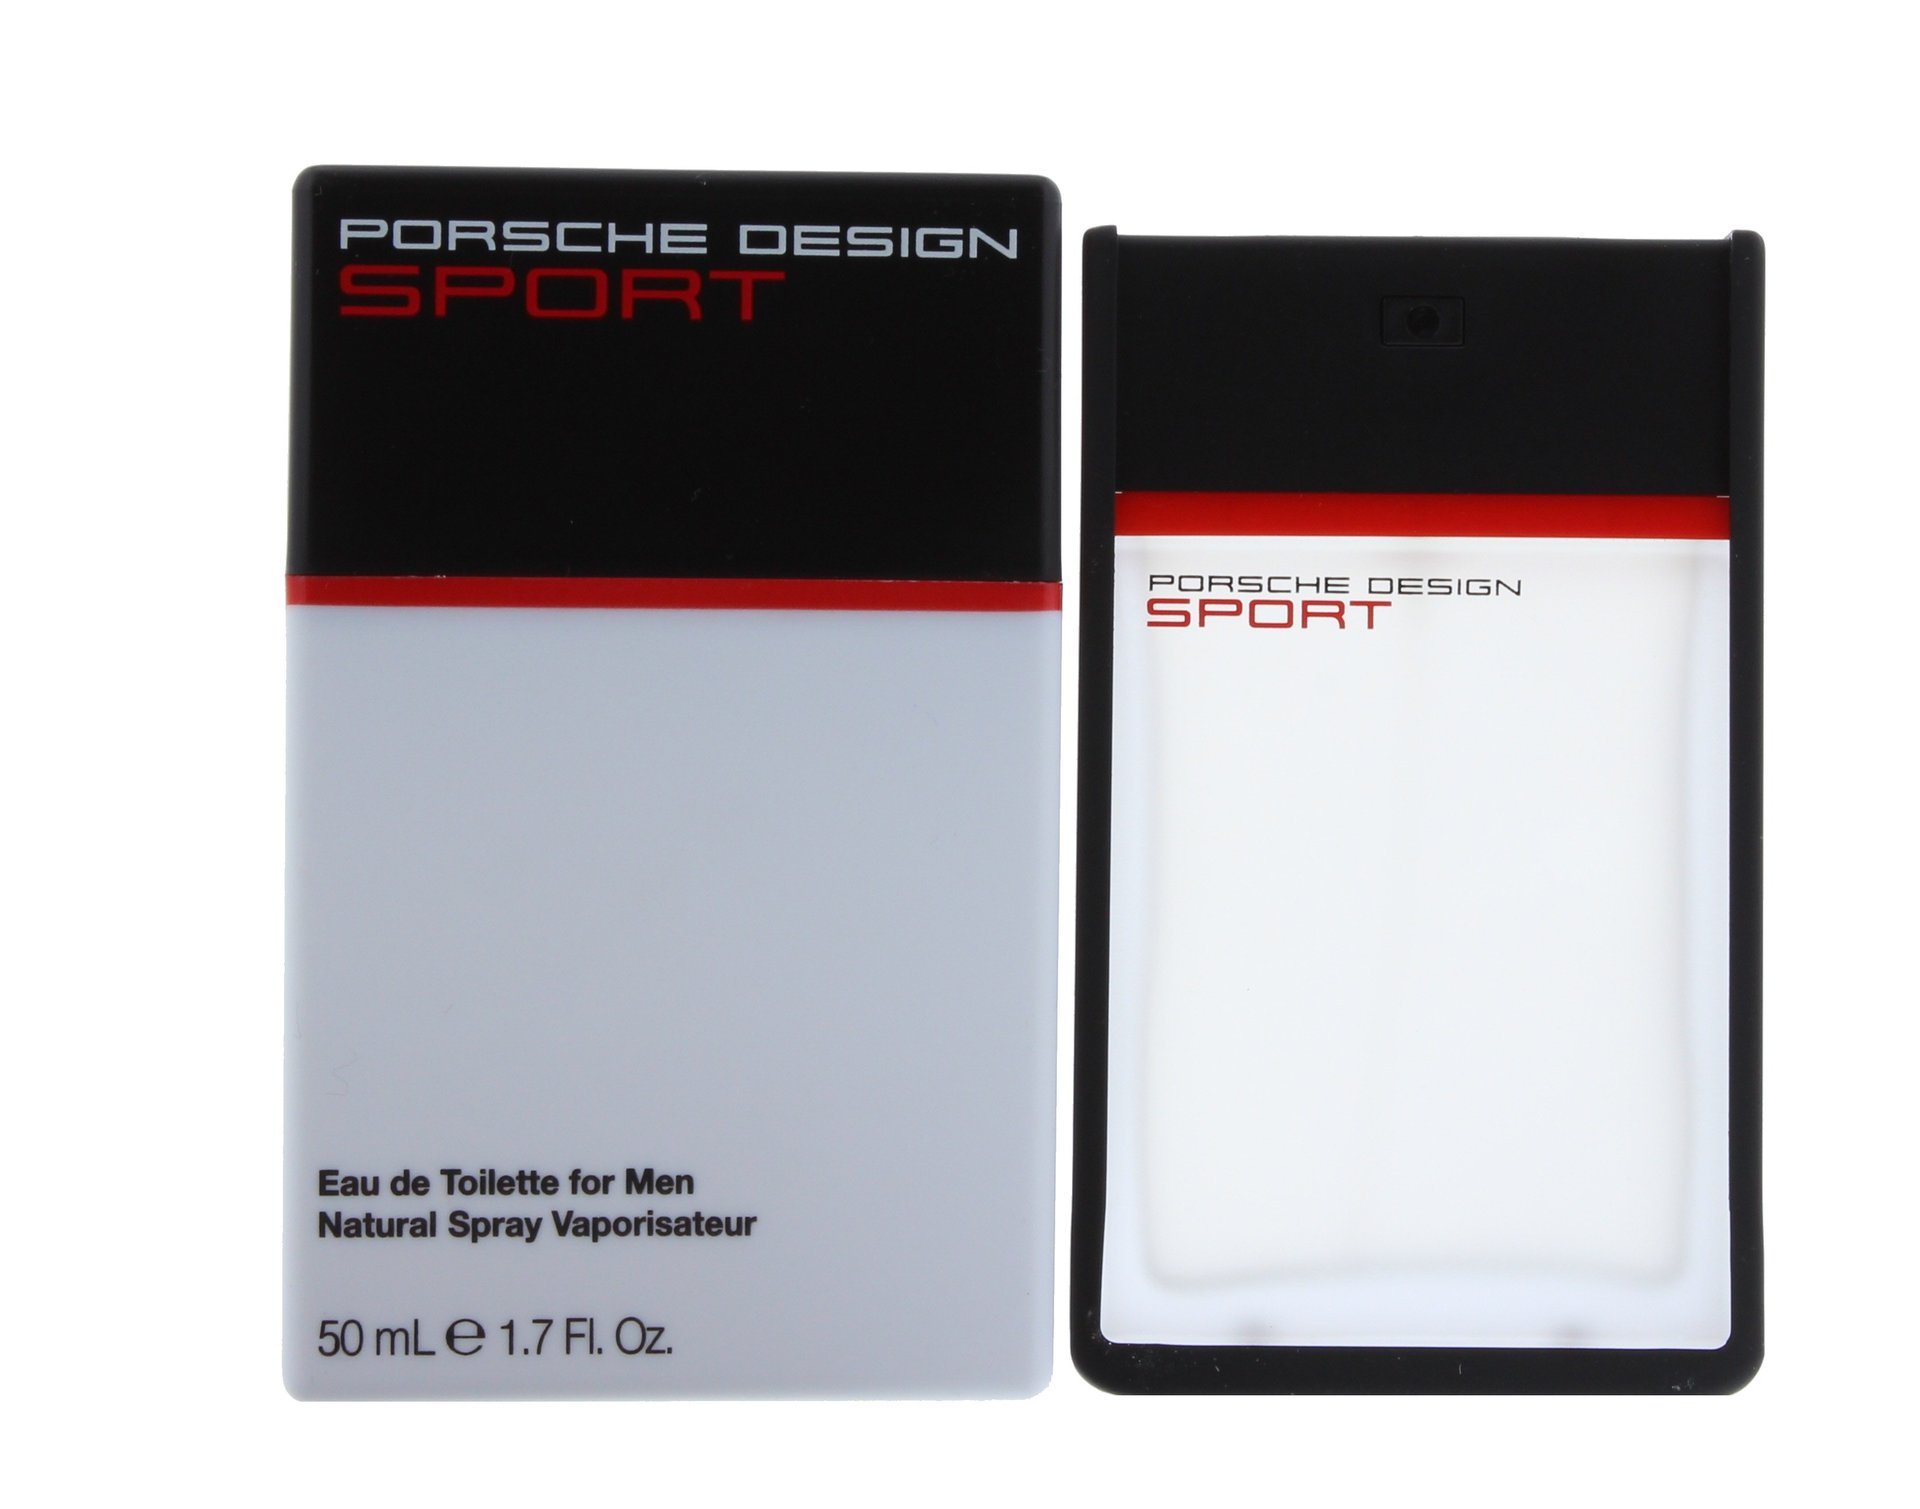 Porsche Design Sport Eau De Toilette for Men 50 ml